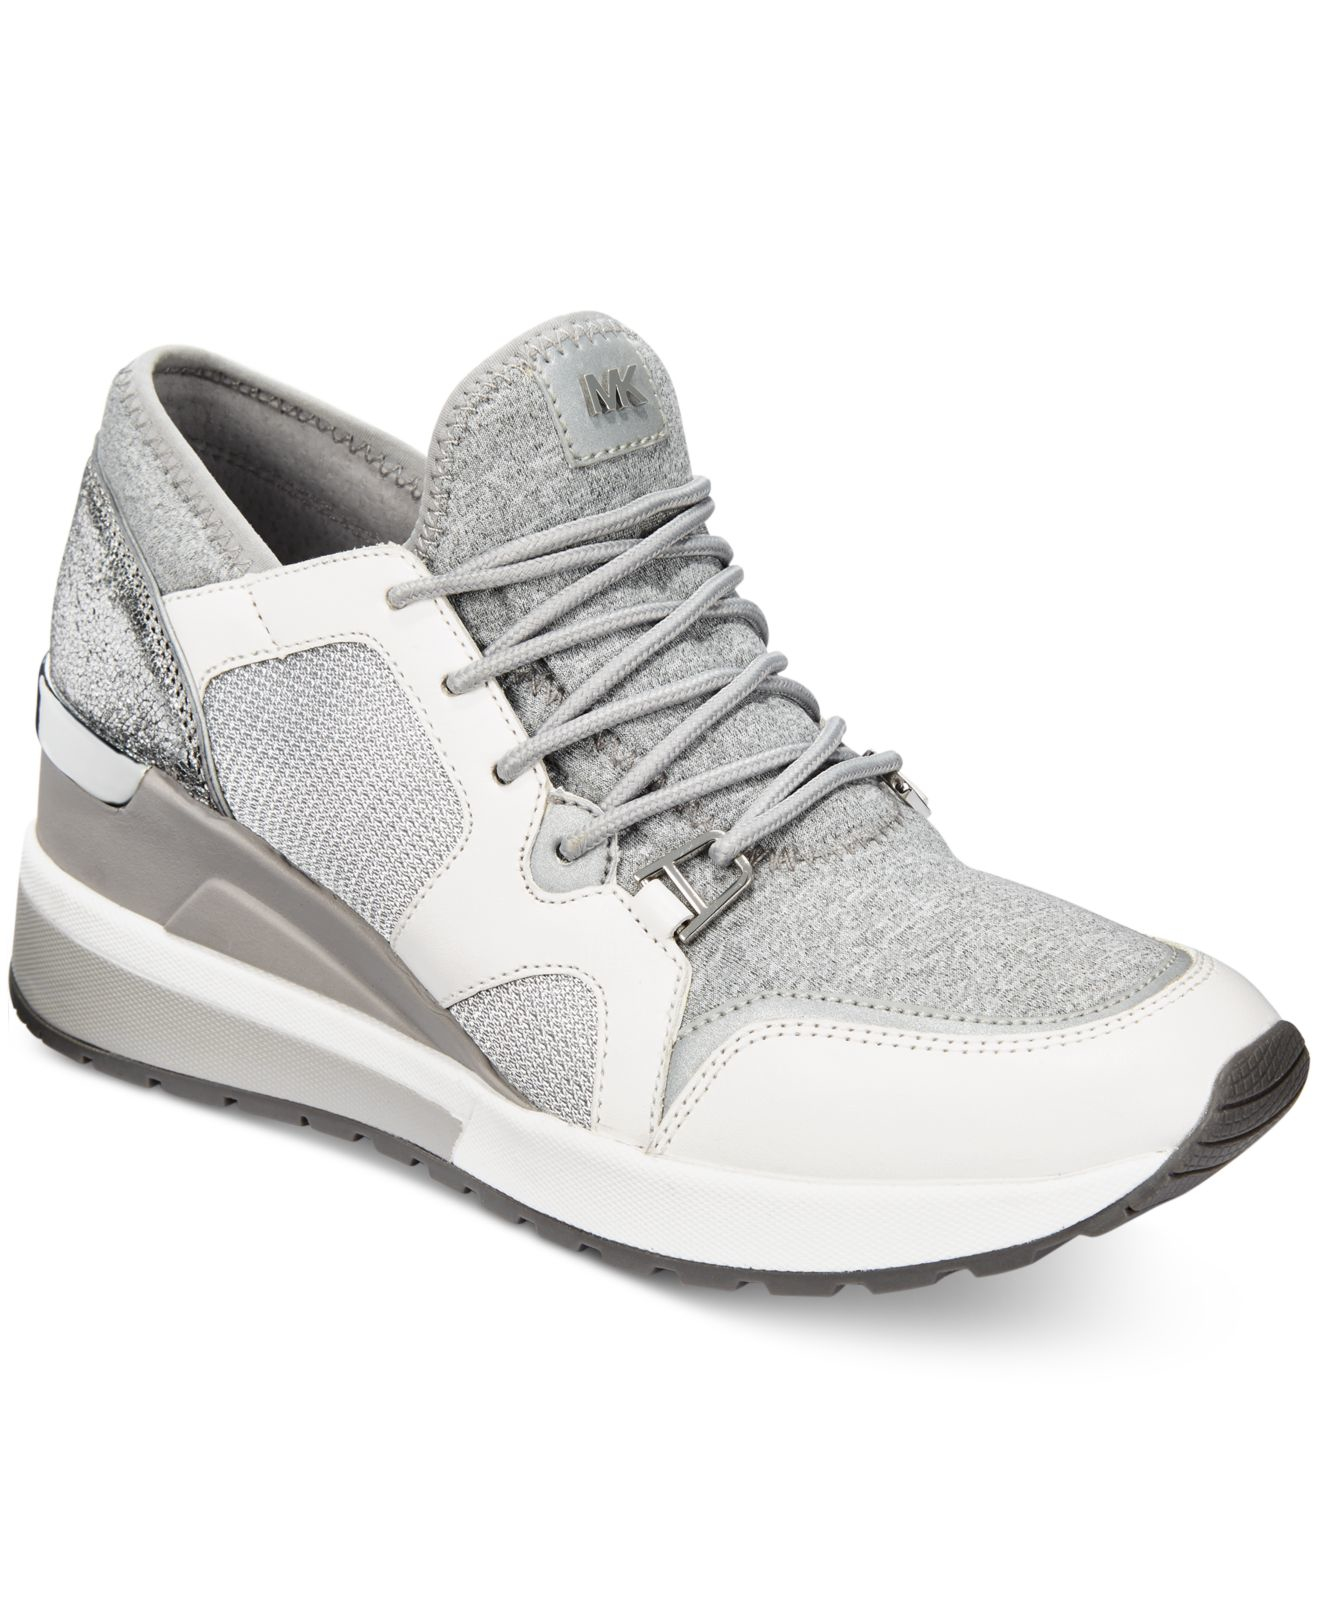 Michael kors michael scout athletic sneakers in gray lyst